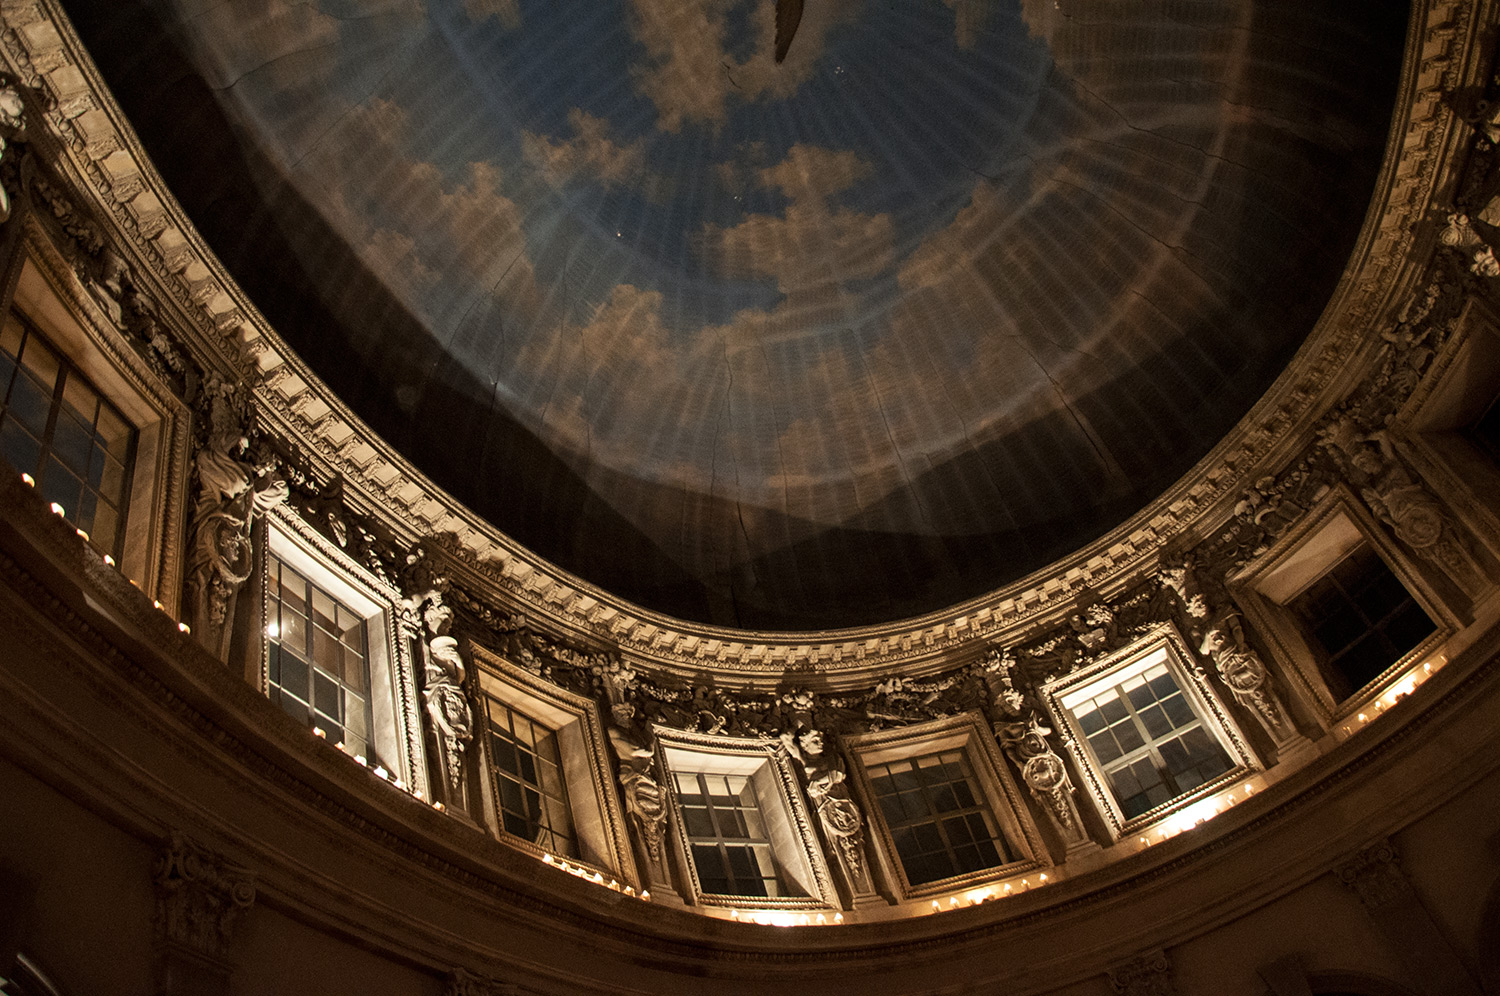 Grand Salon dome